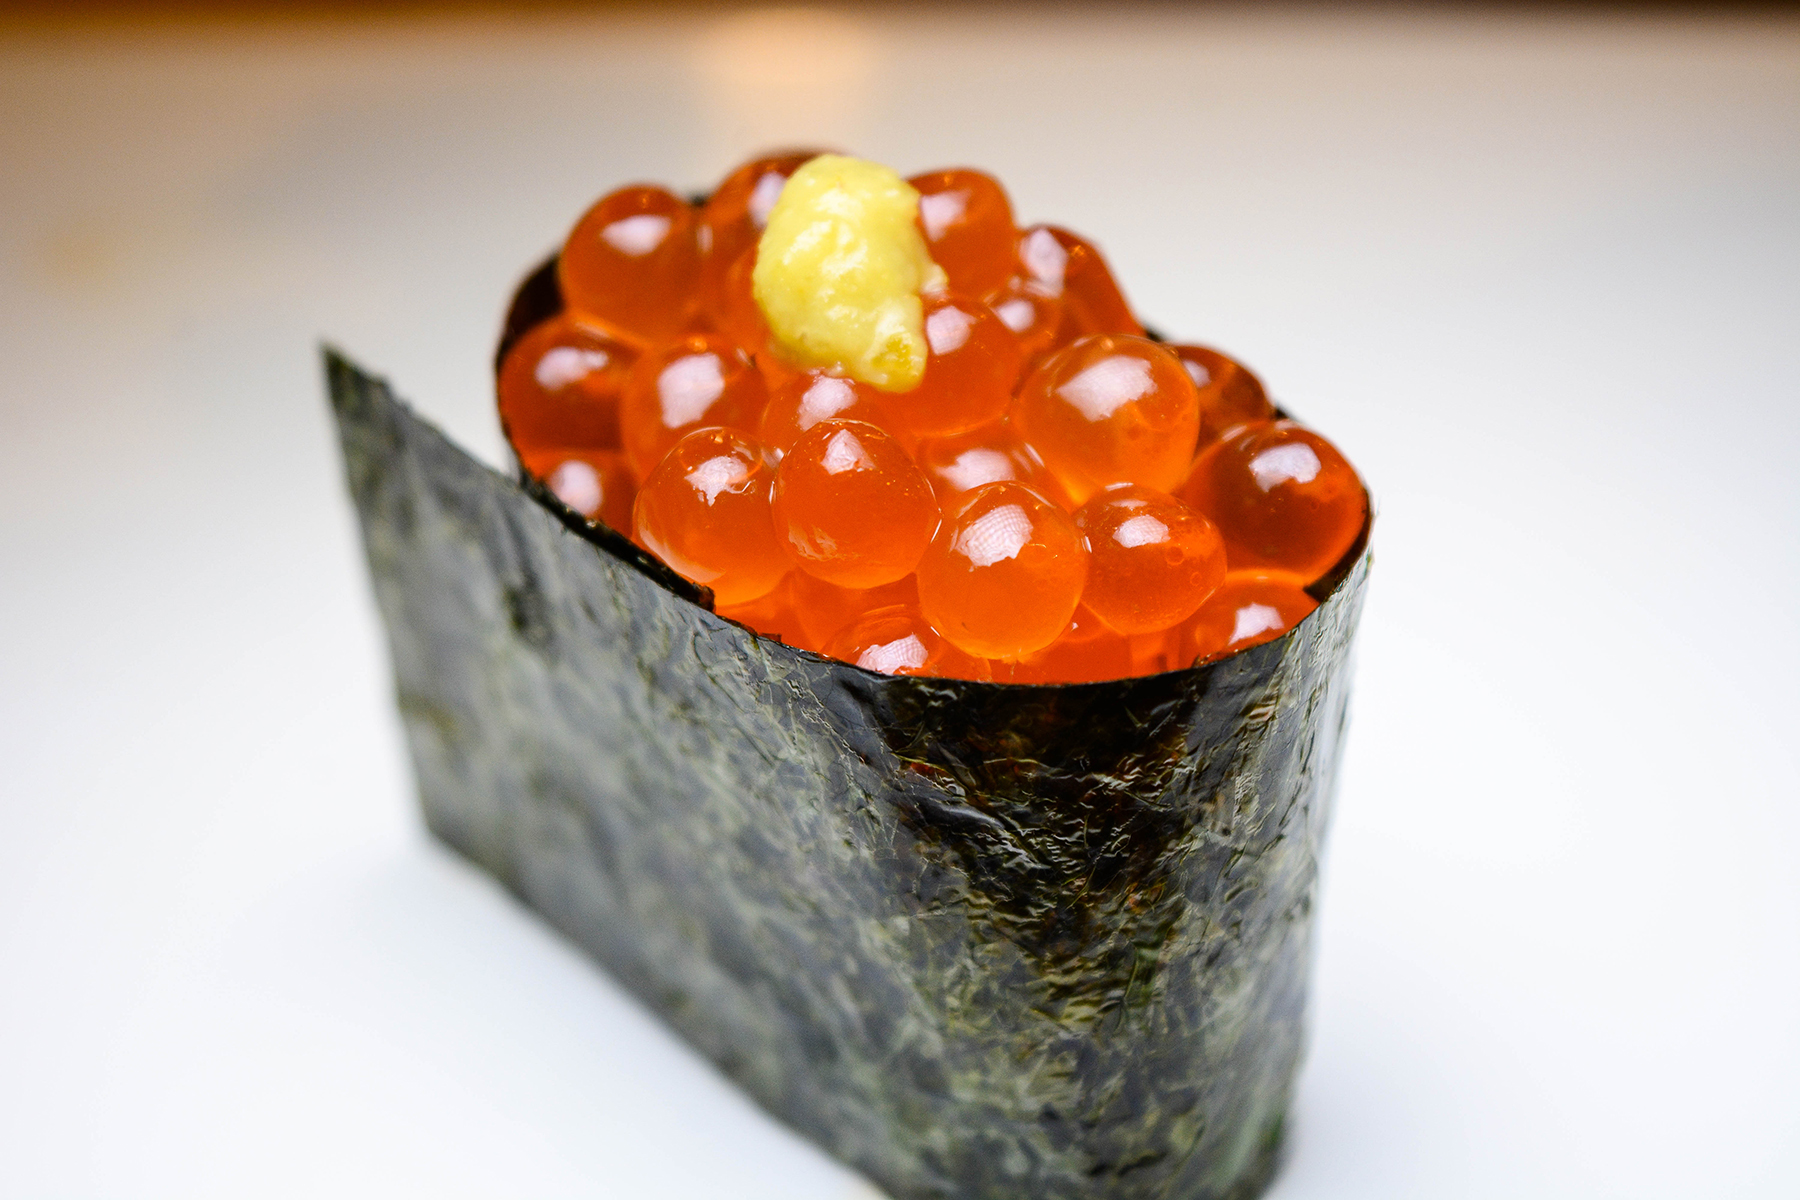 brooklyn s sushi katsuei rolls its affordable omakase options into